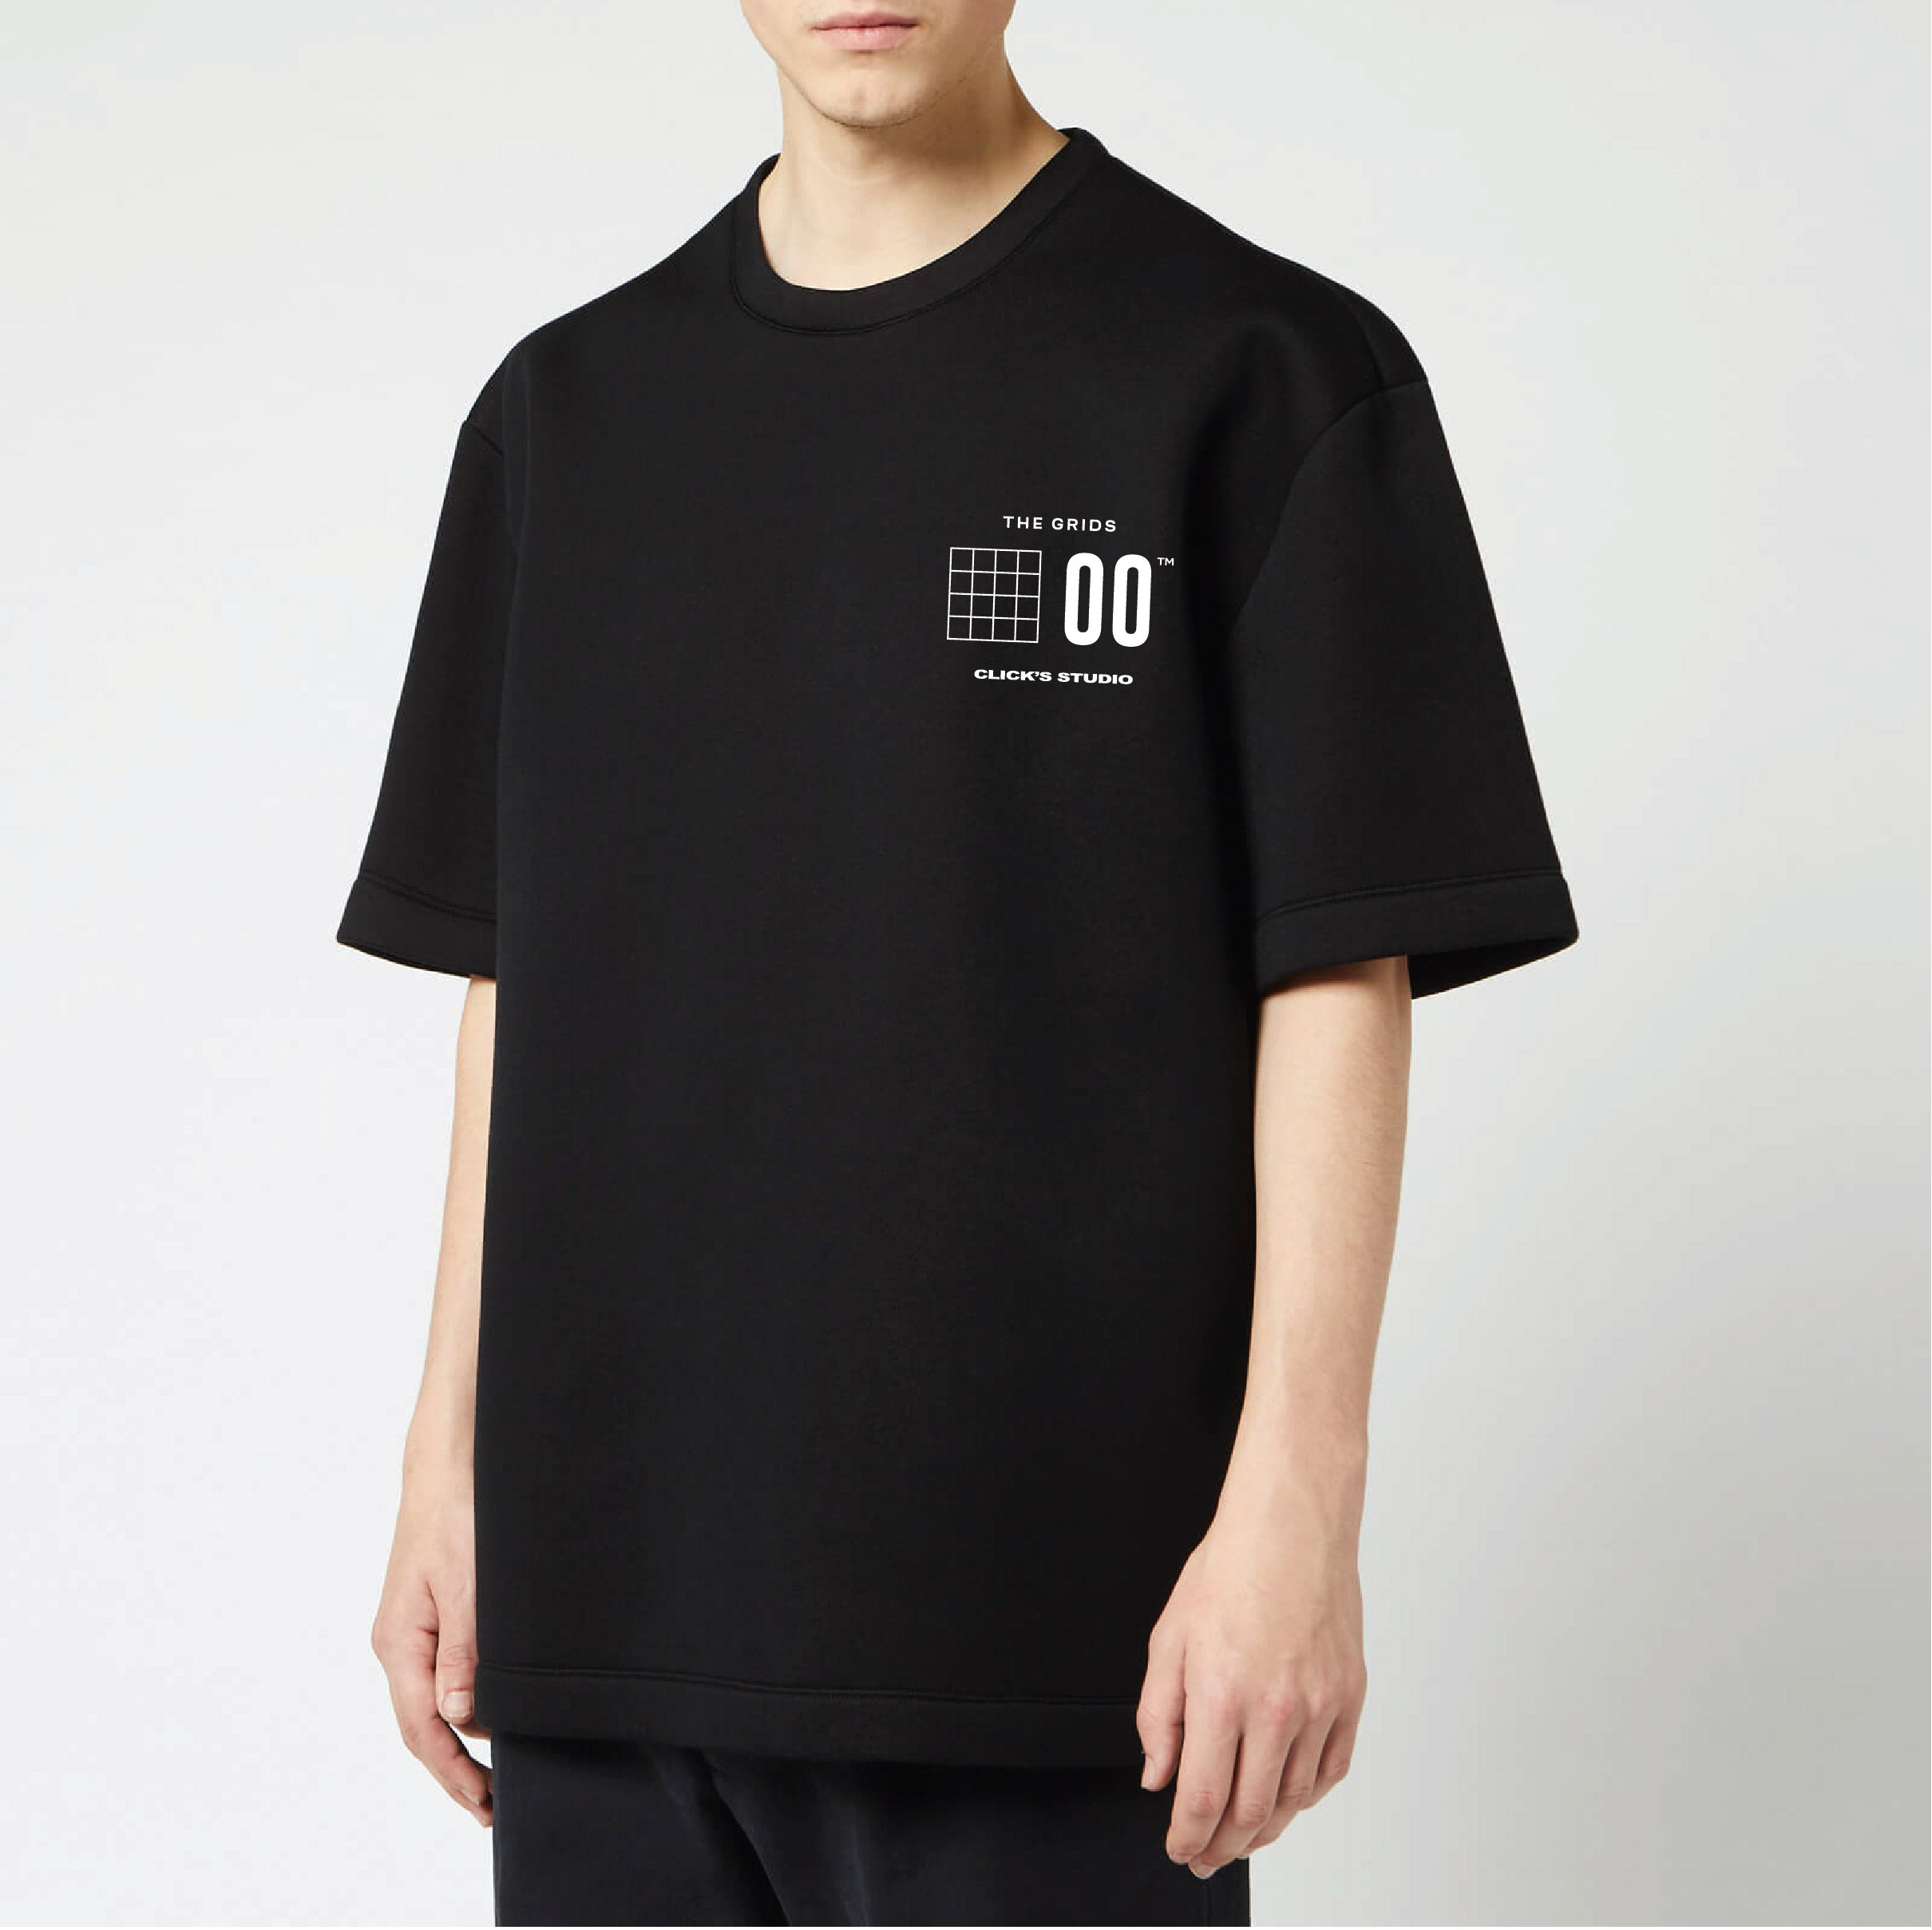 The Grids Long Sleeve Tee by Click's